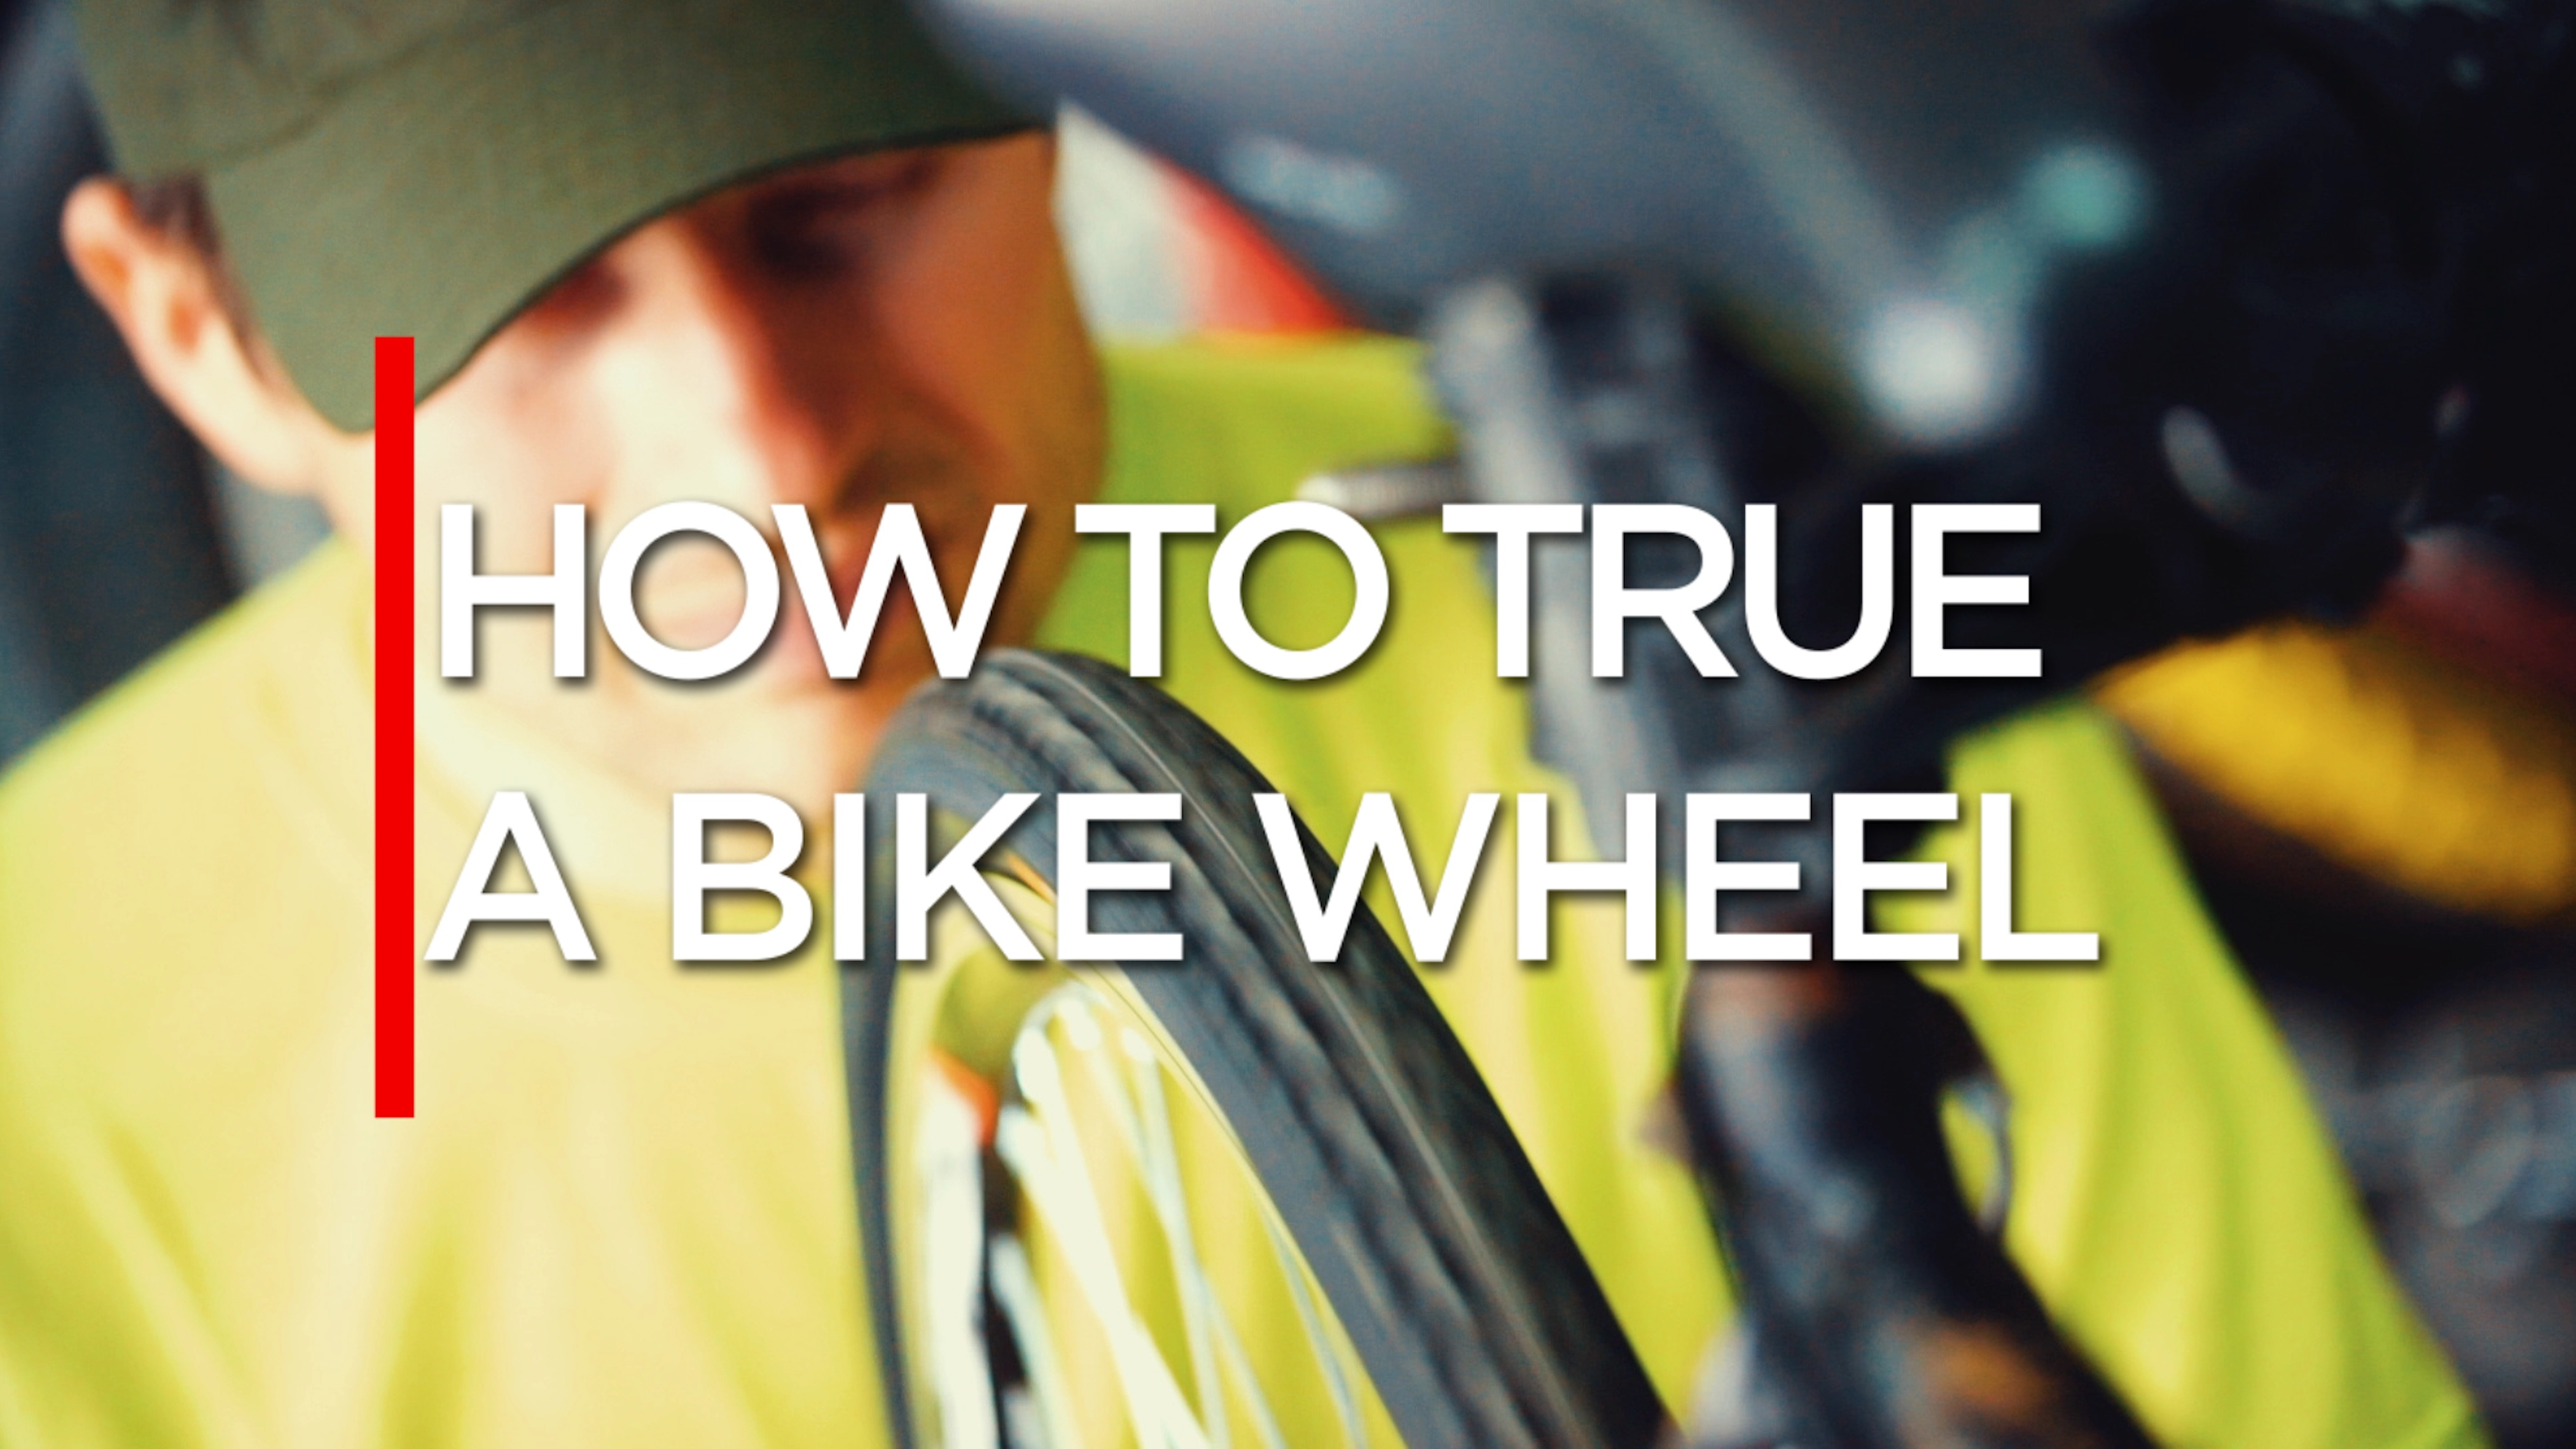 true-your-wheels-thumbnail-0e2c6bc3-1b37-4115-a785-2885f02e43c4